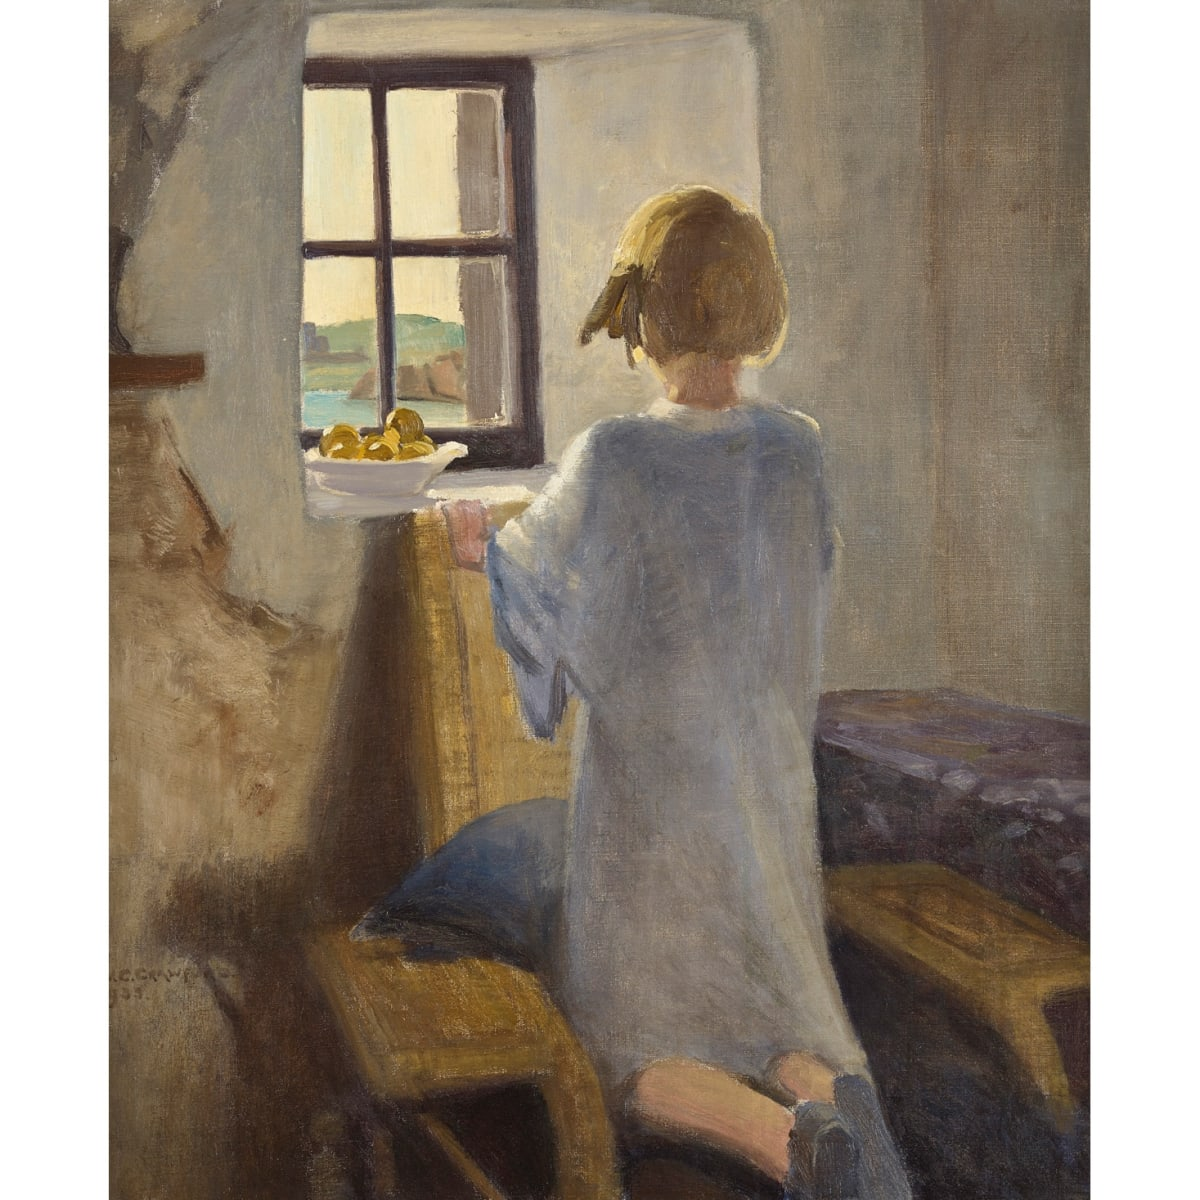 William Caldwell Crawford From the Croft Window, Mull, 1933 signed and dated 1933 oil on canvas 30 x 25 inches